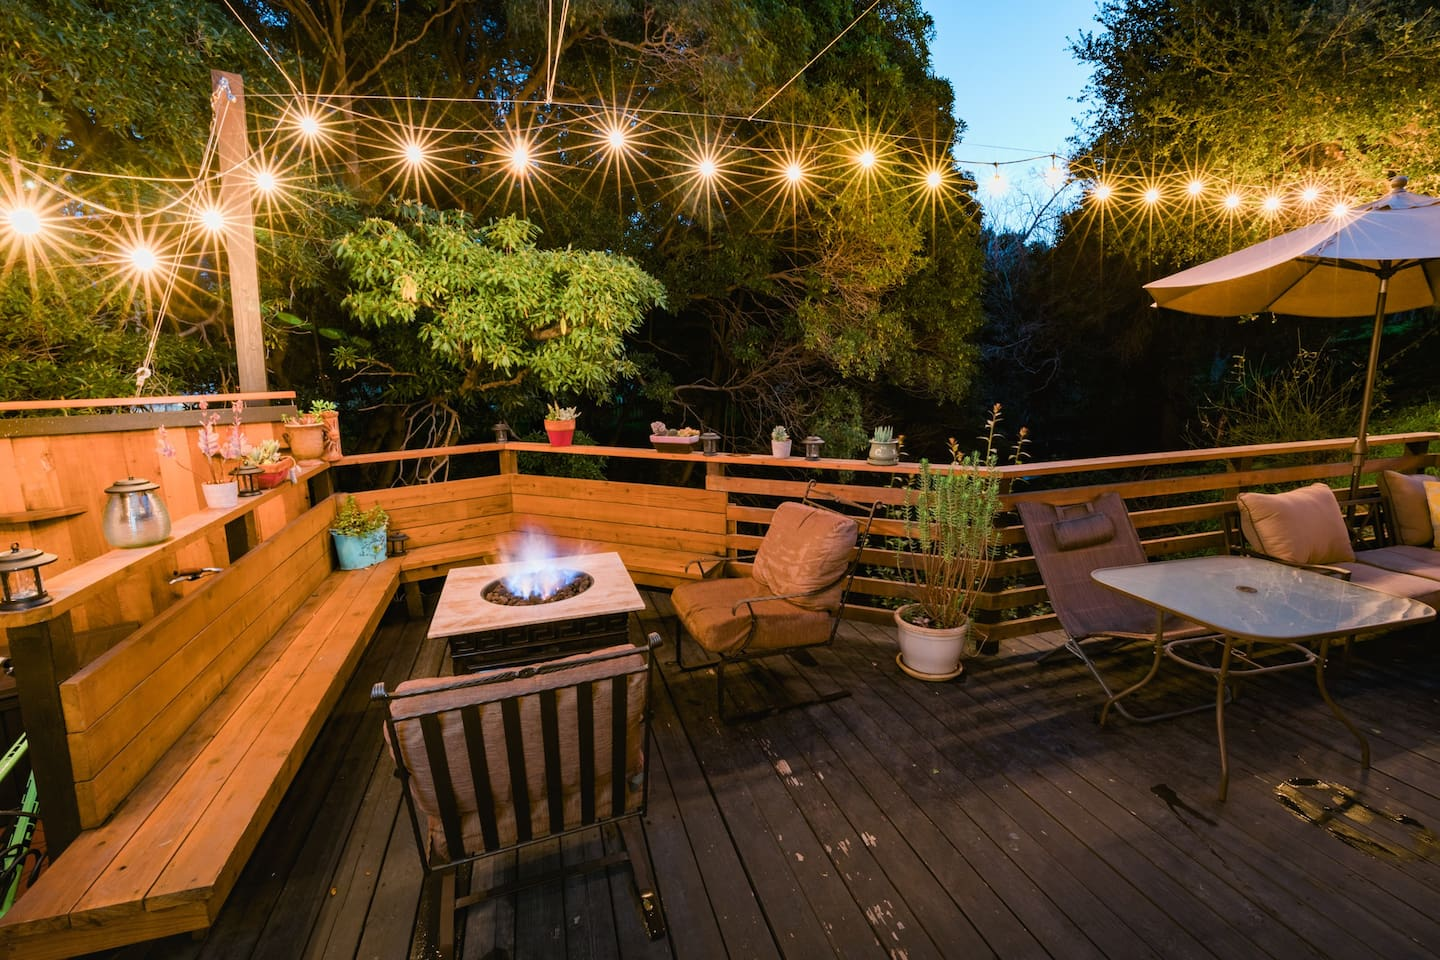 Creekside Deck and Firepit! Beautiful ambiance!